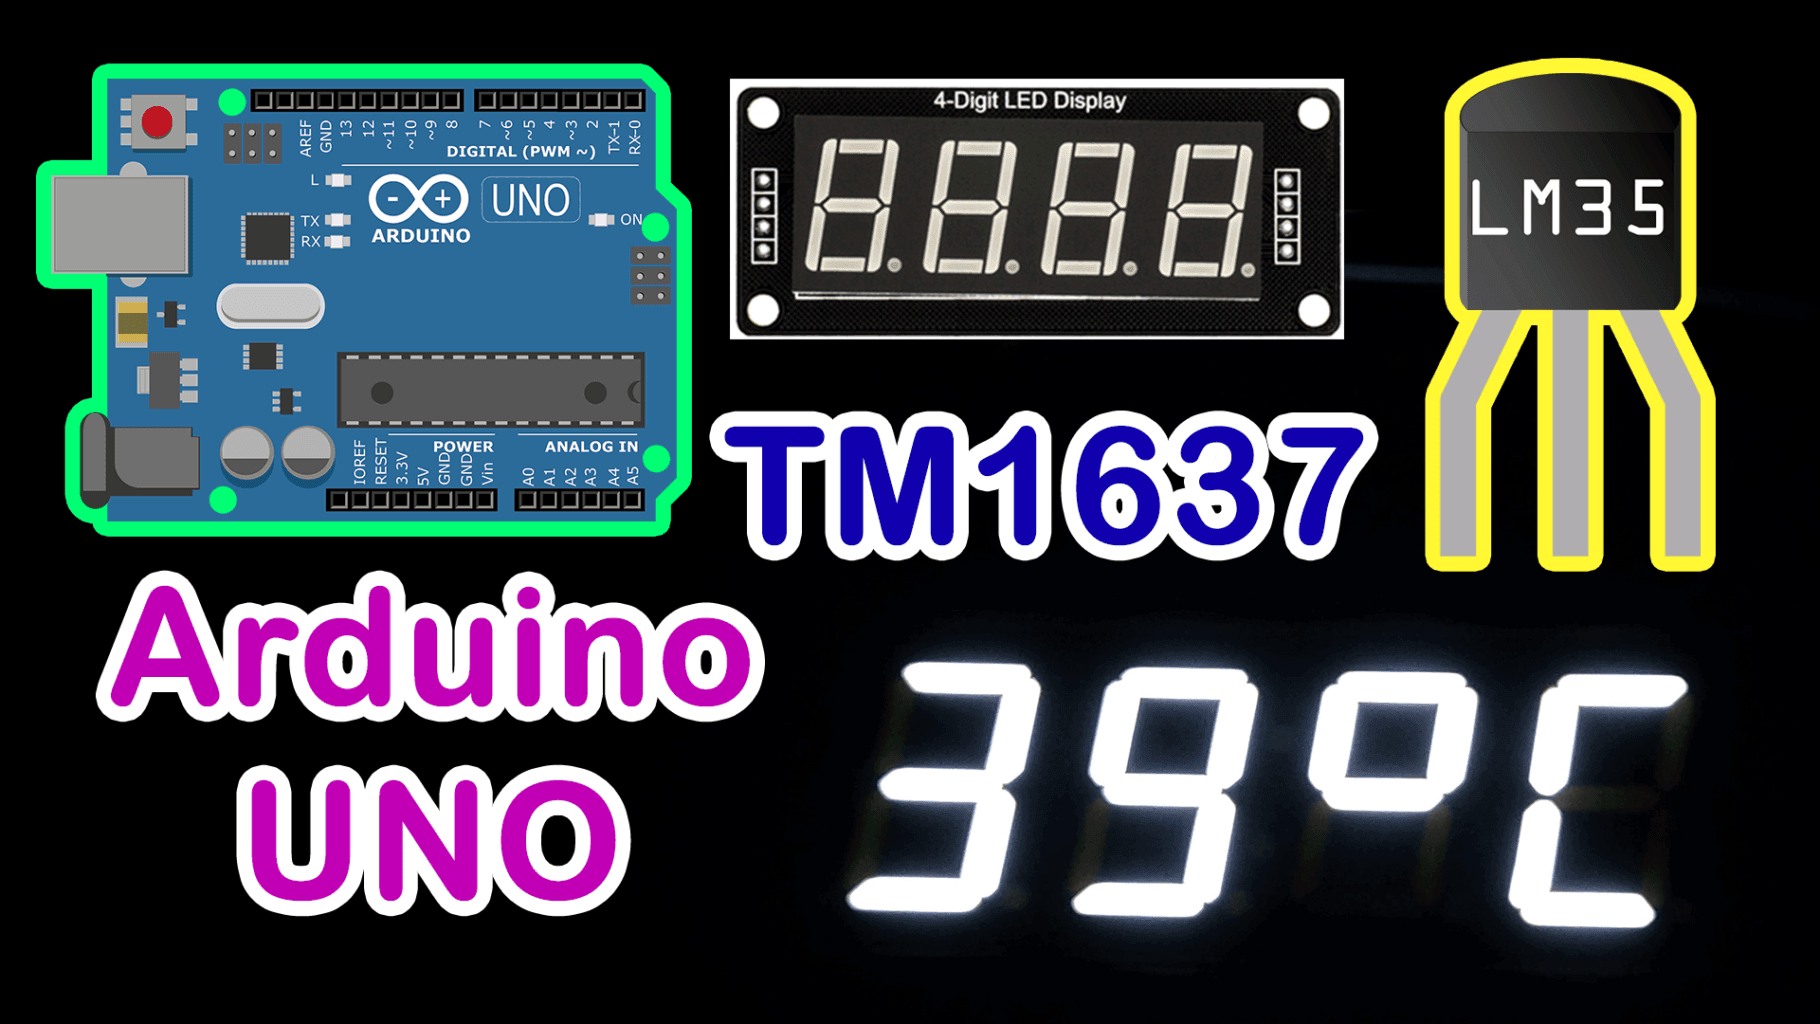 LM35 Sensor with TM1637 Display in Arduino UNO